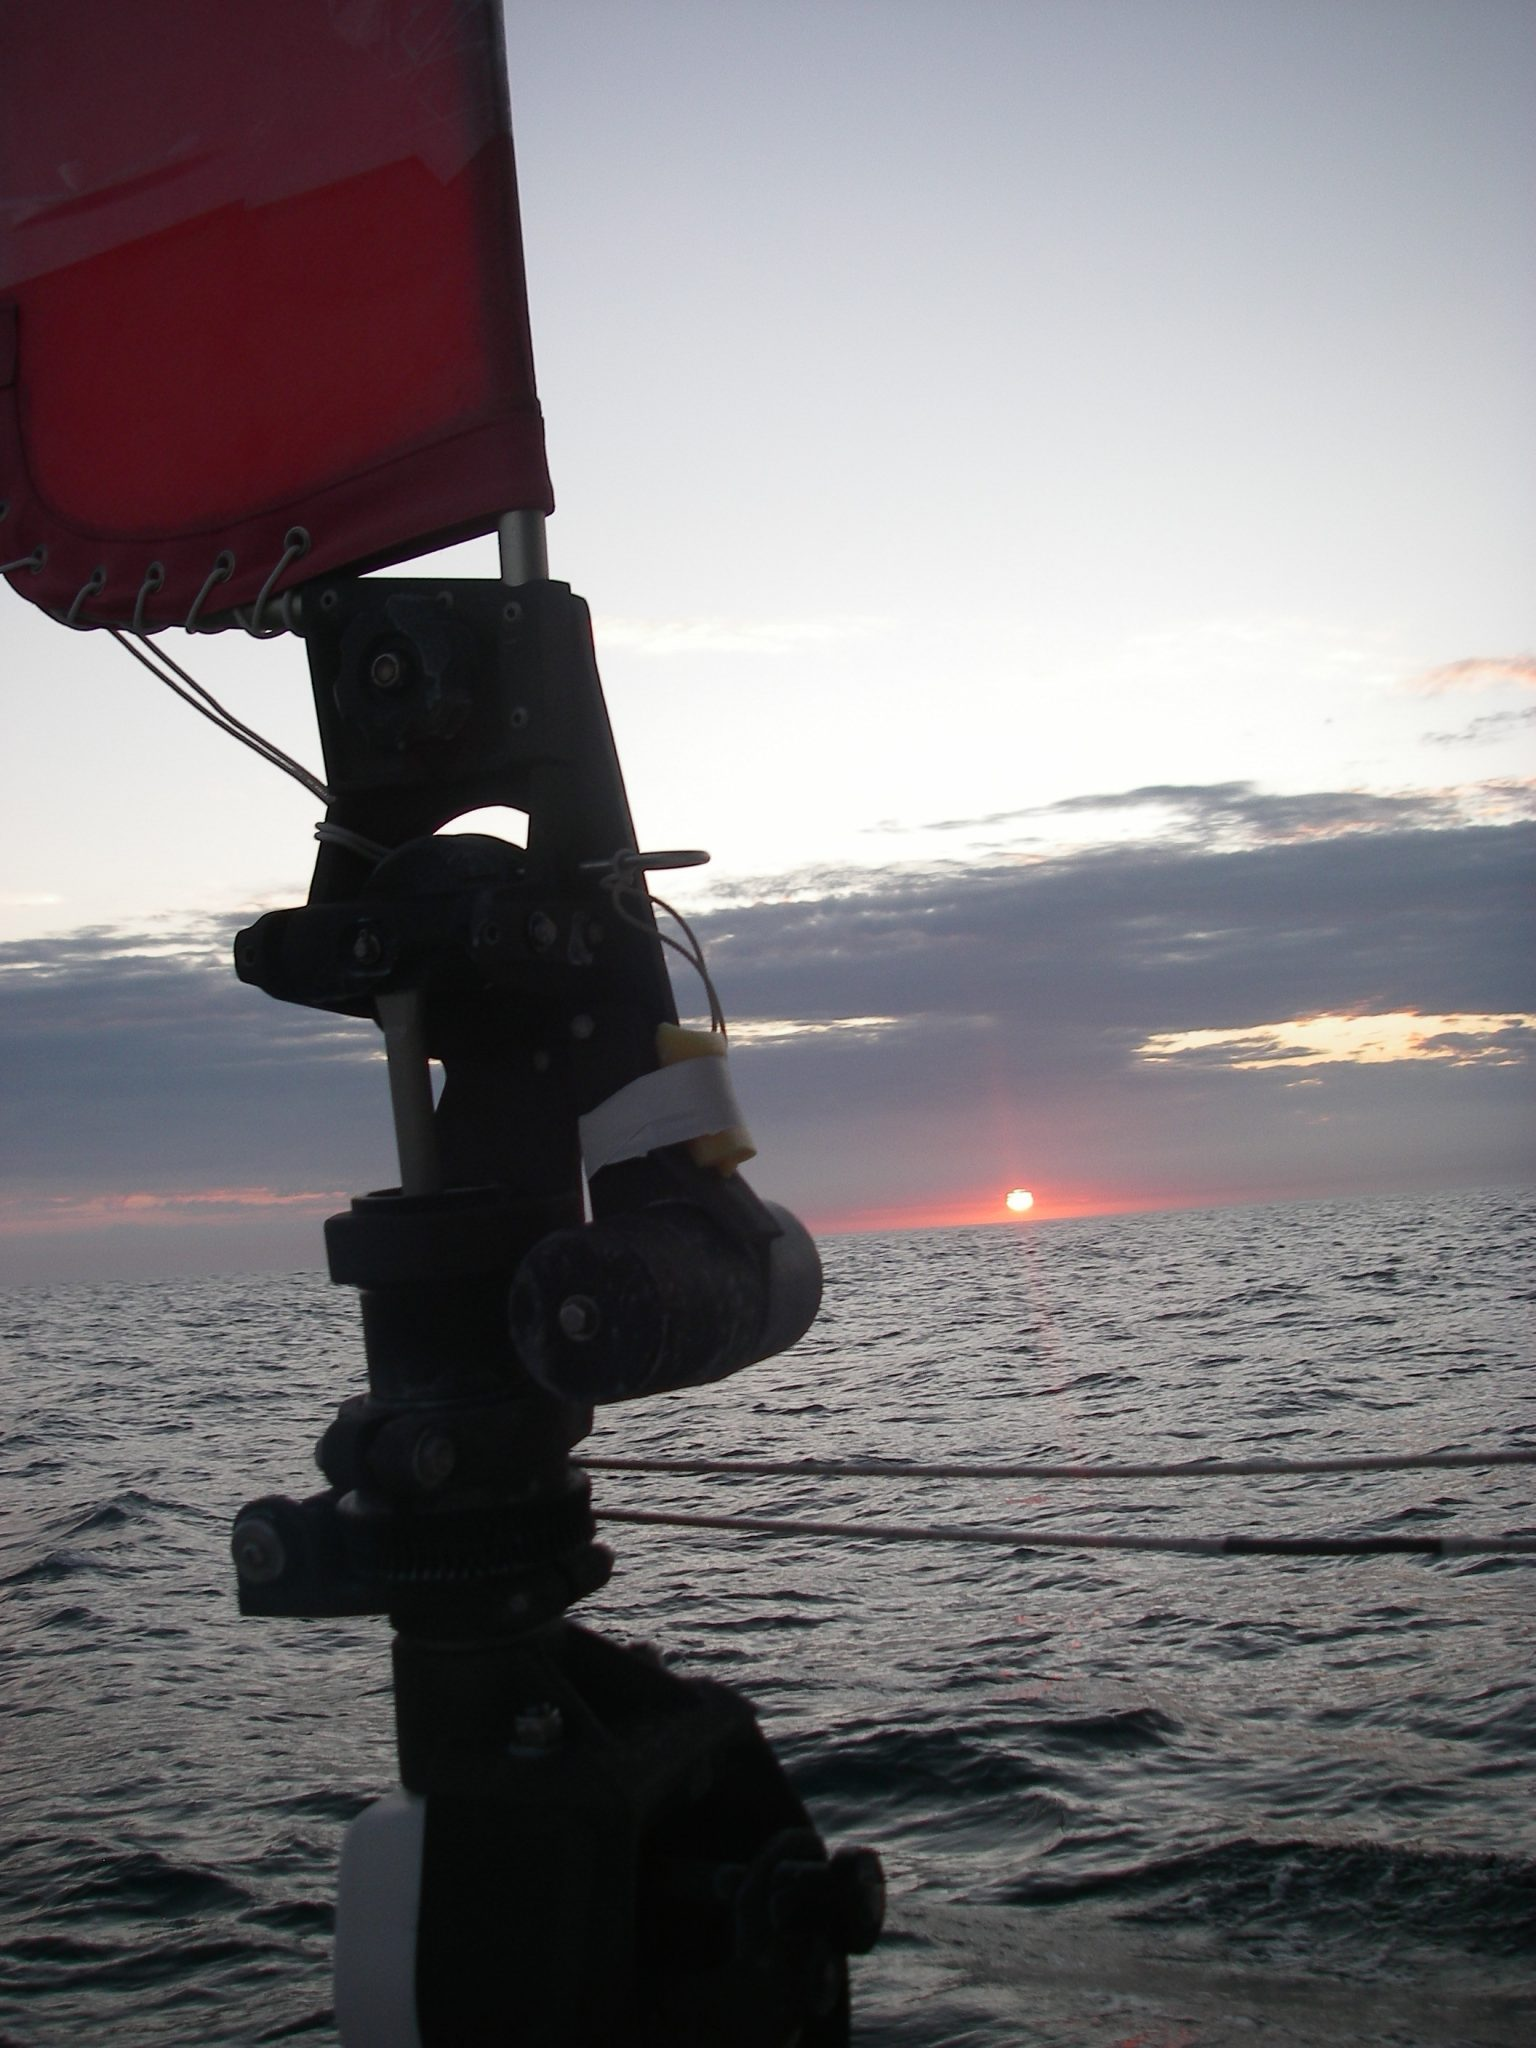 6.1. Sunrise from Joyful's cockpit on the Coral Sea.